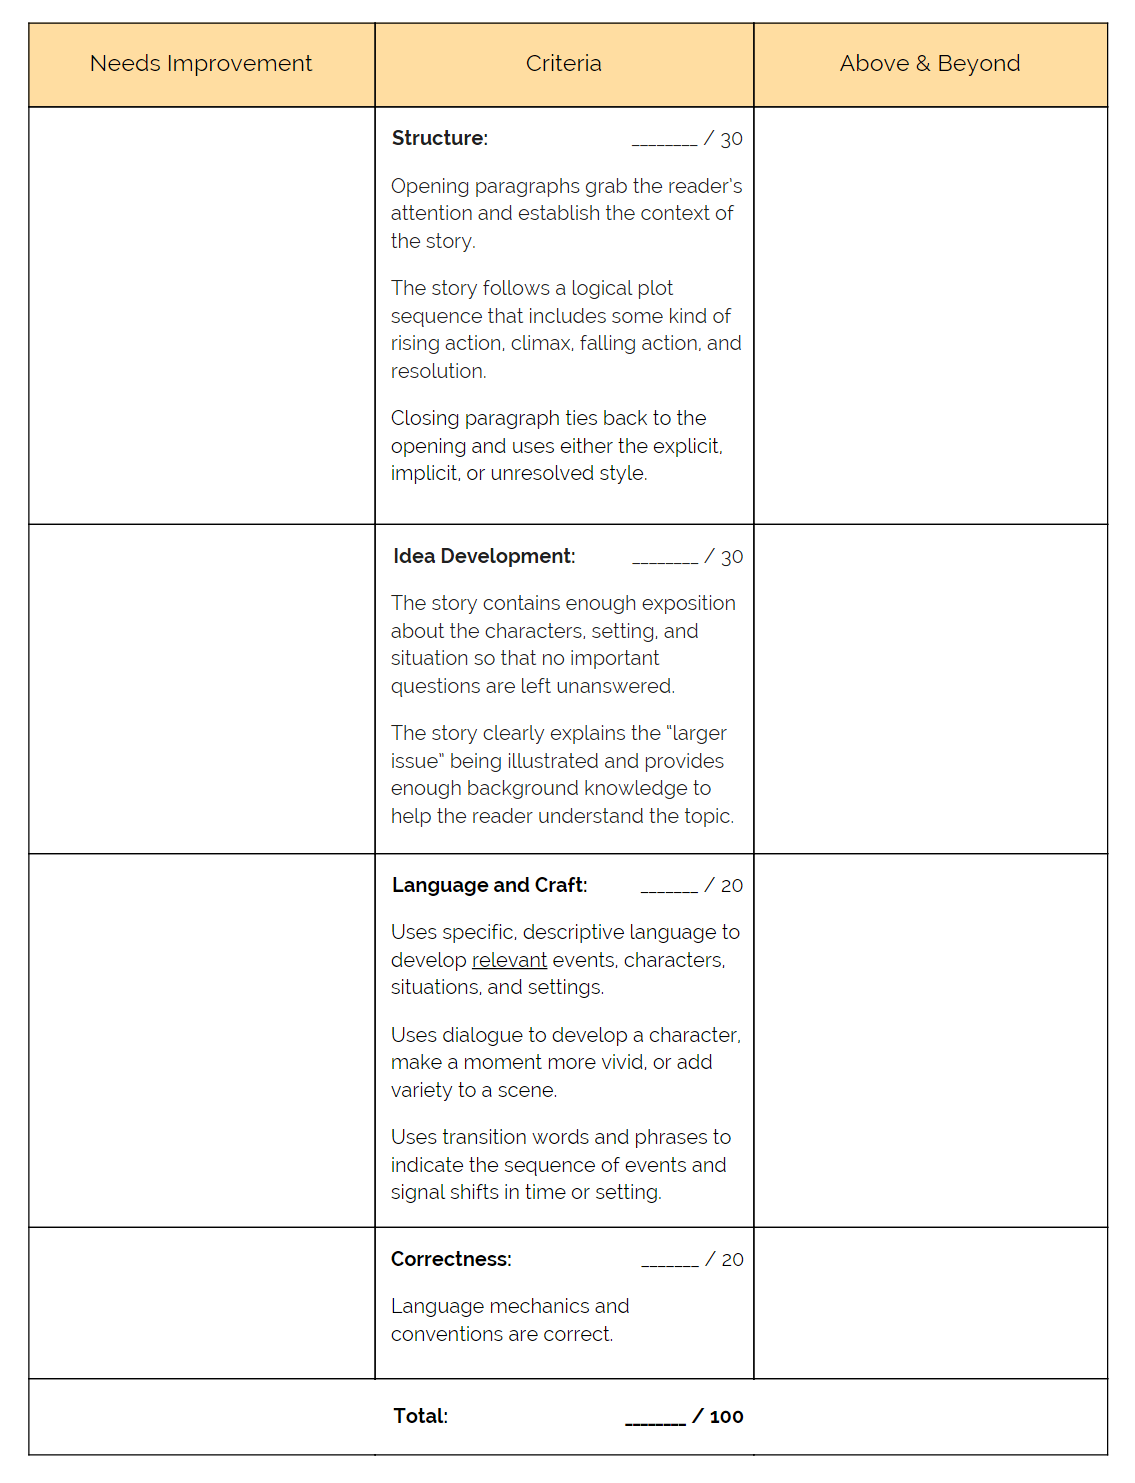 simple essay scoring rubric Grading rubric for writing assignment  your professor may use a slightly different rubric,  from simple to complex, with.